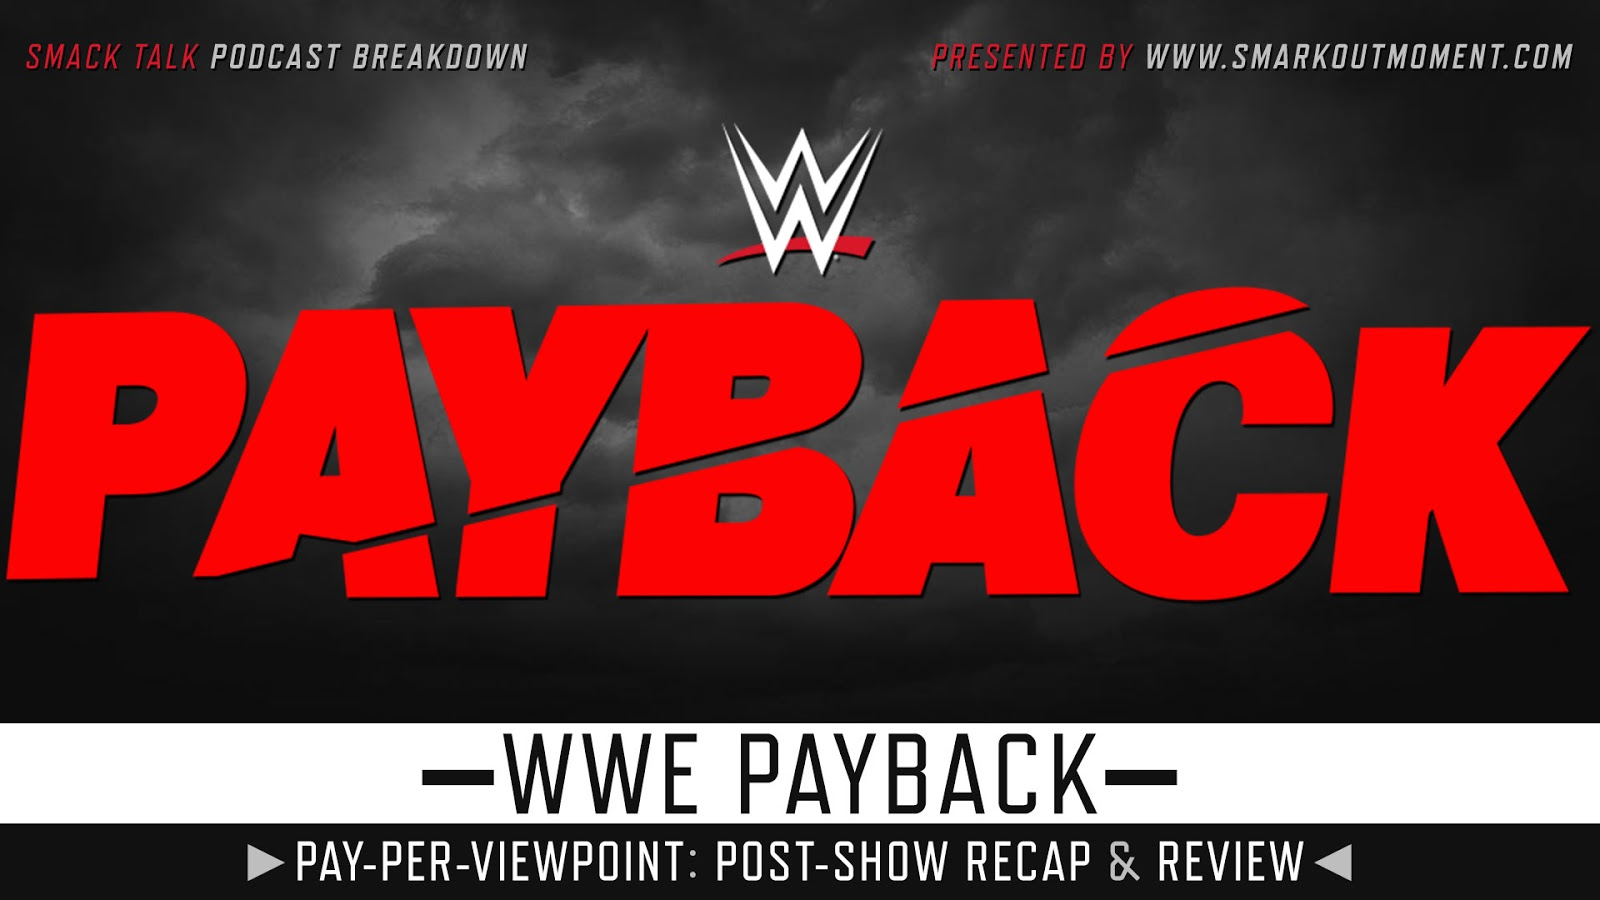 WWE Payback 2020 Recap and Review Podcast